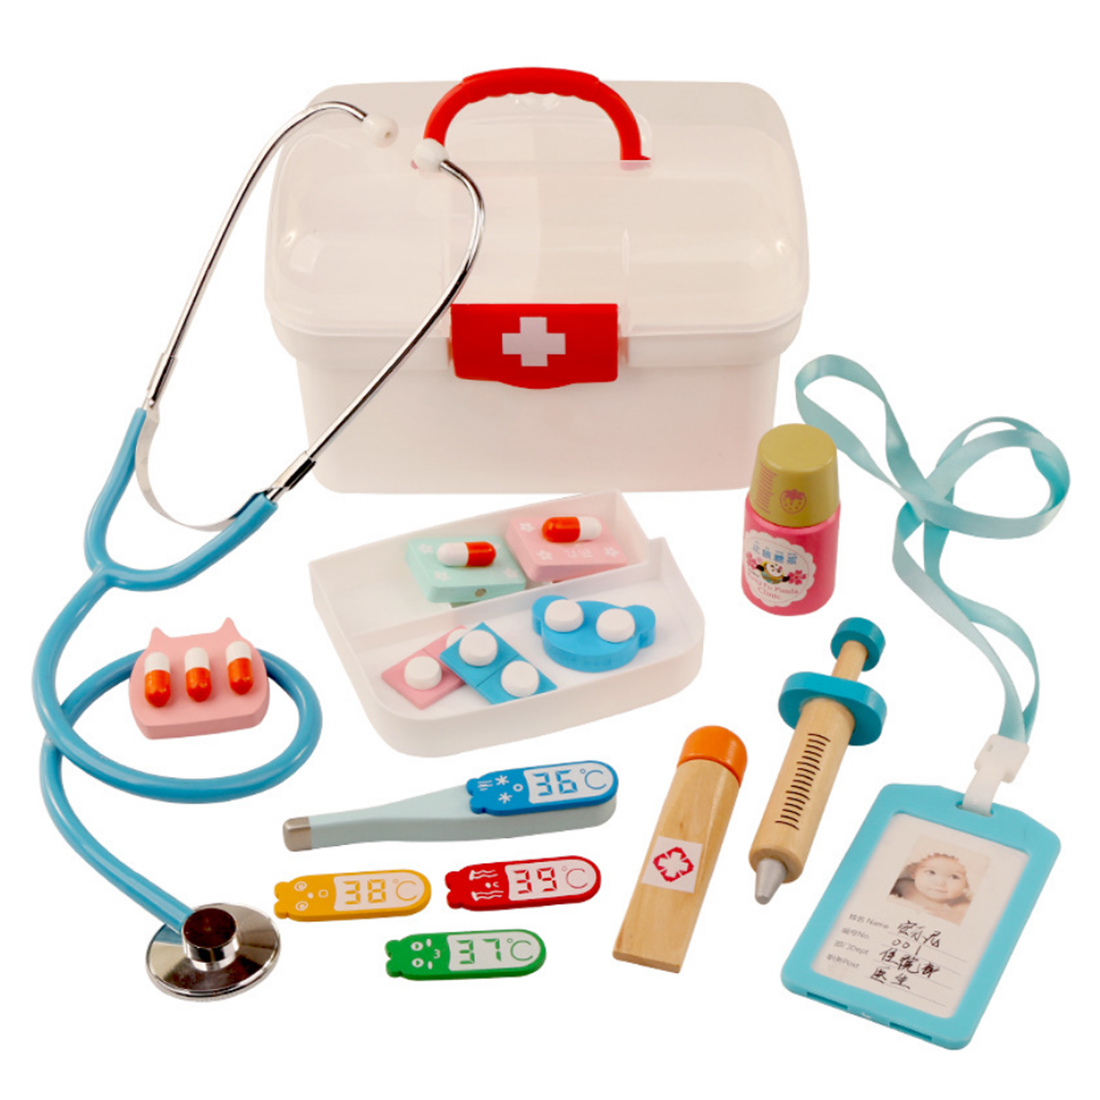 16Pcs Children Pretend Play Doctor Nurse Dentist Toy Set Portable Suitcase Medical Kit Kids Educational Role Play Classic Toys16Pcs Children Pretend Play Doctor Nurse Dentist Toy Set Portable Suitcase Medical Kit Kids Educational Role Play Classic Toys